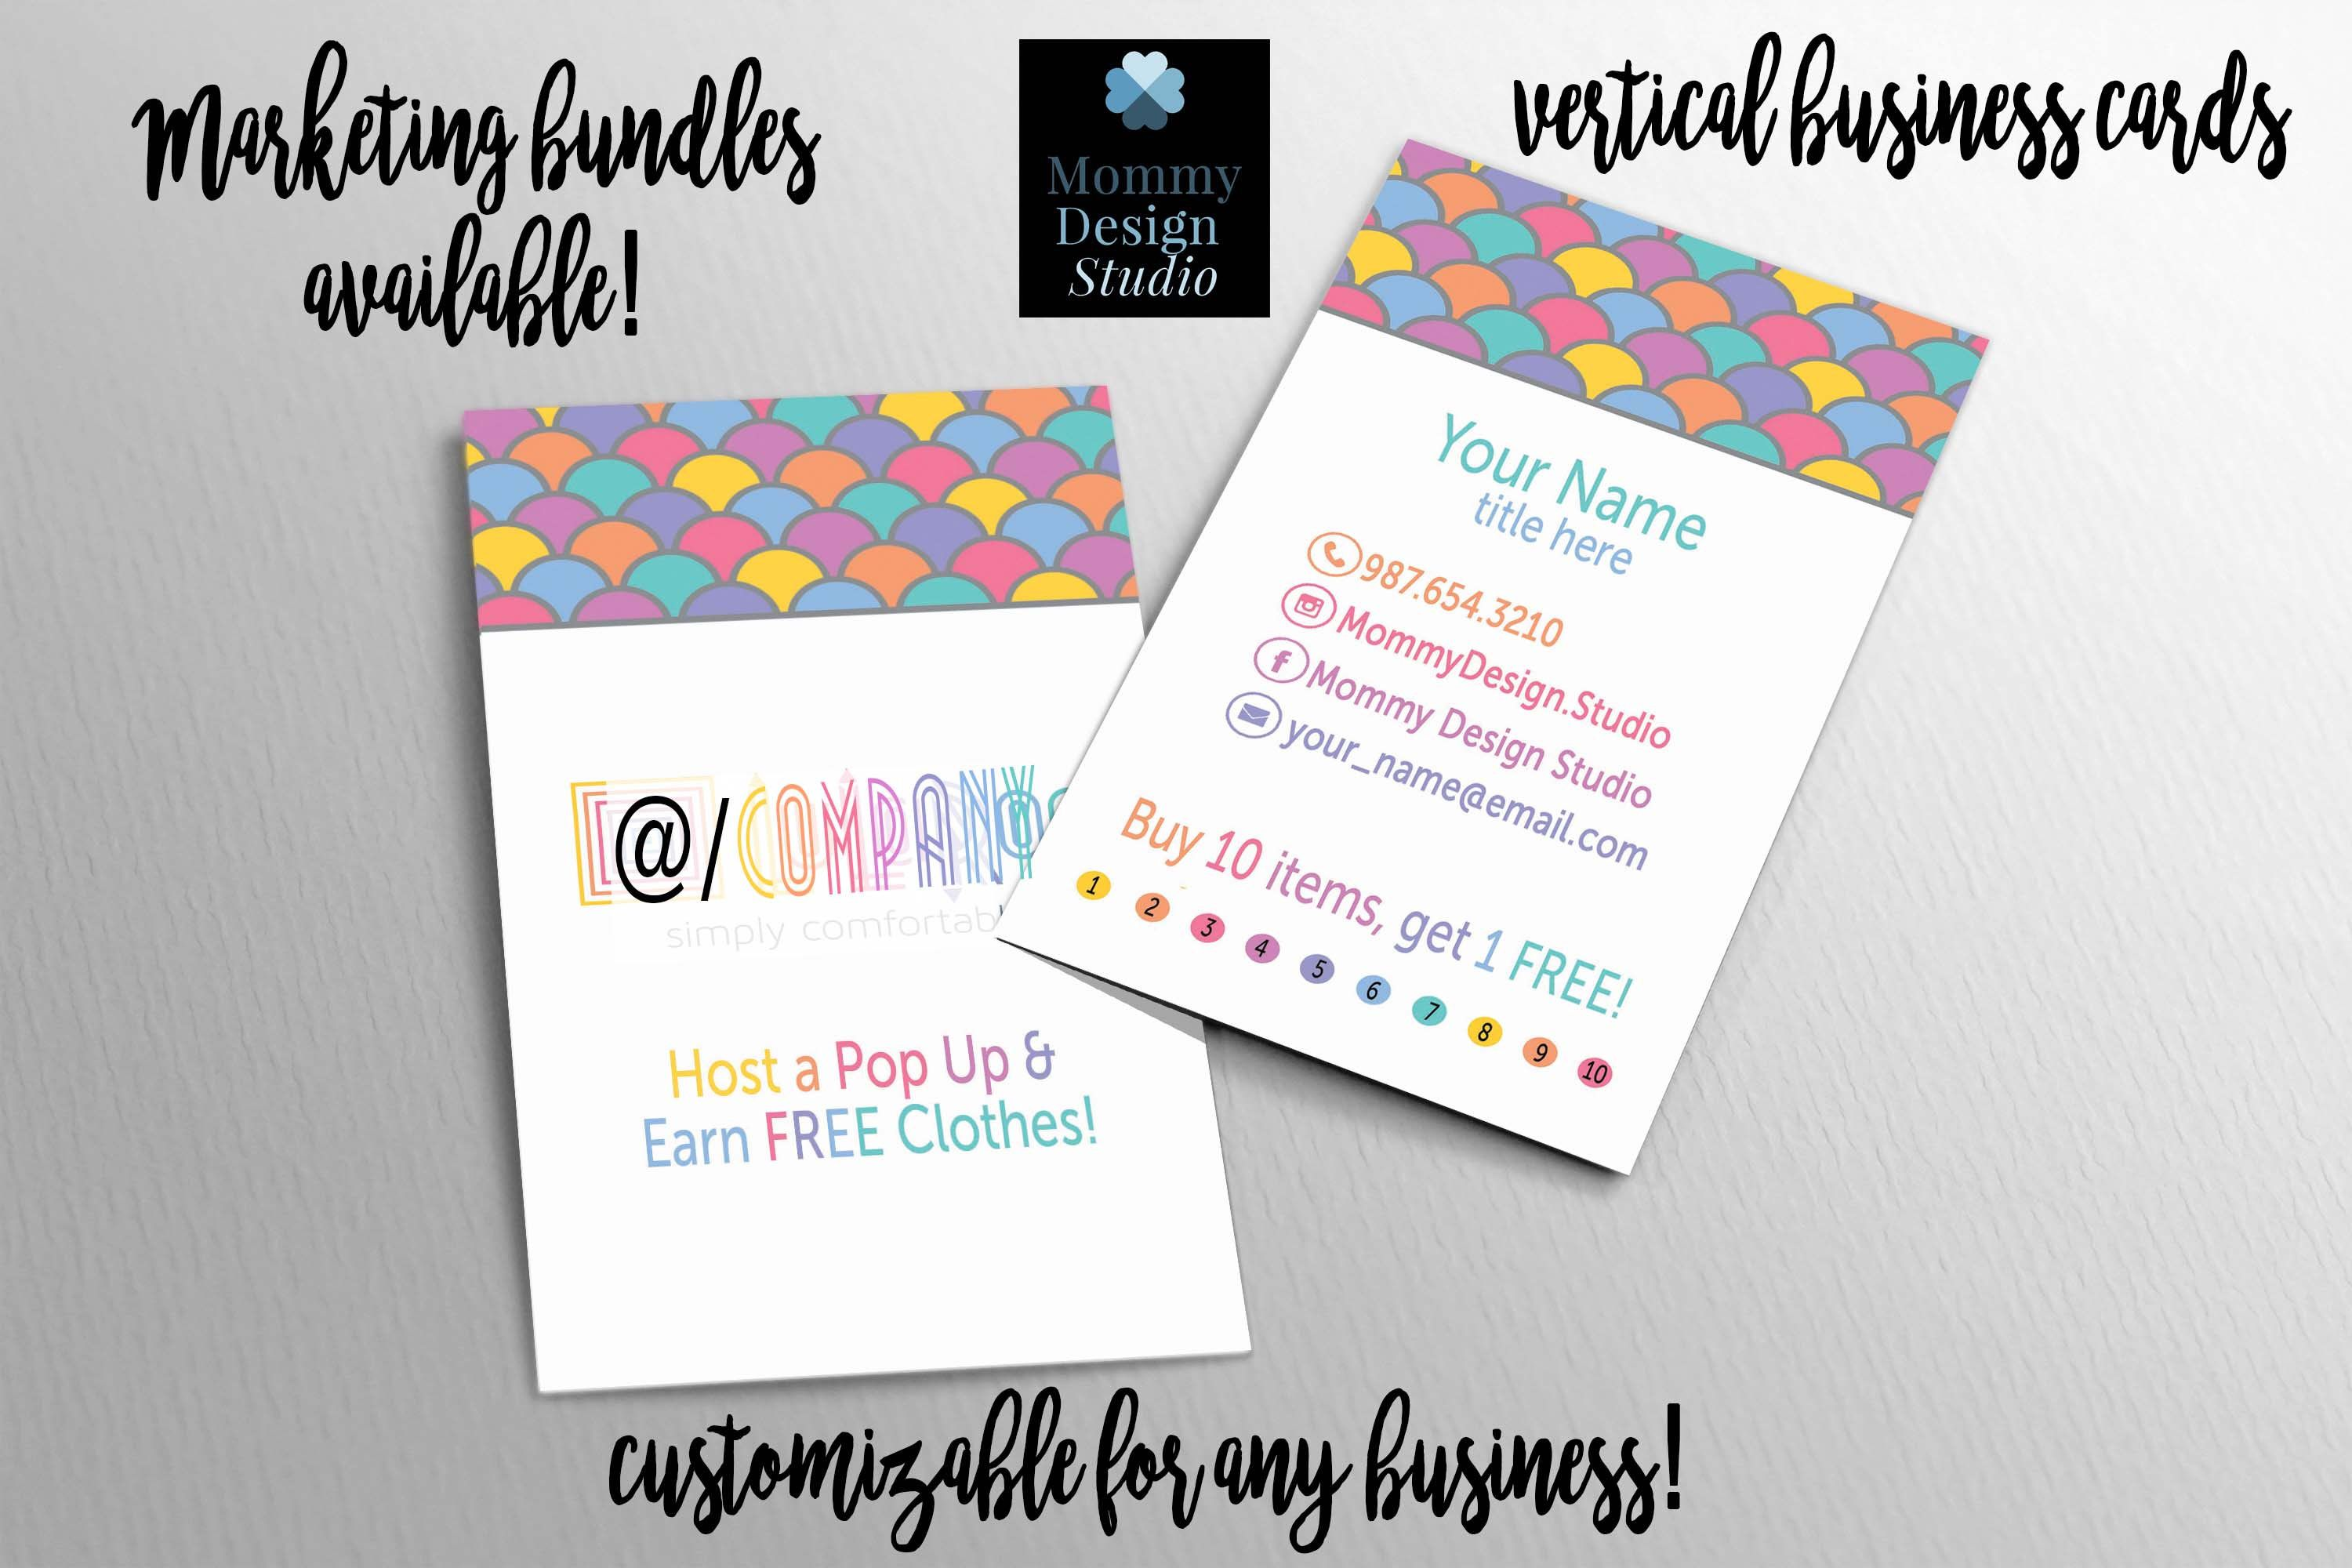 Mermaid scales business card ho approved bundles available buy mermaid scales business card ho approved bundles available buy 10 punch card colourmoves